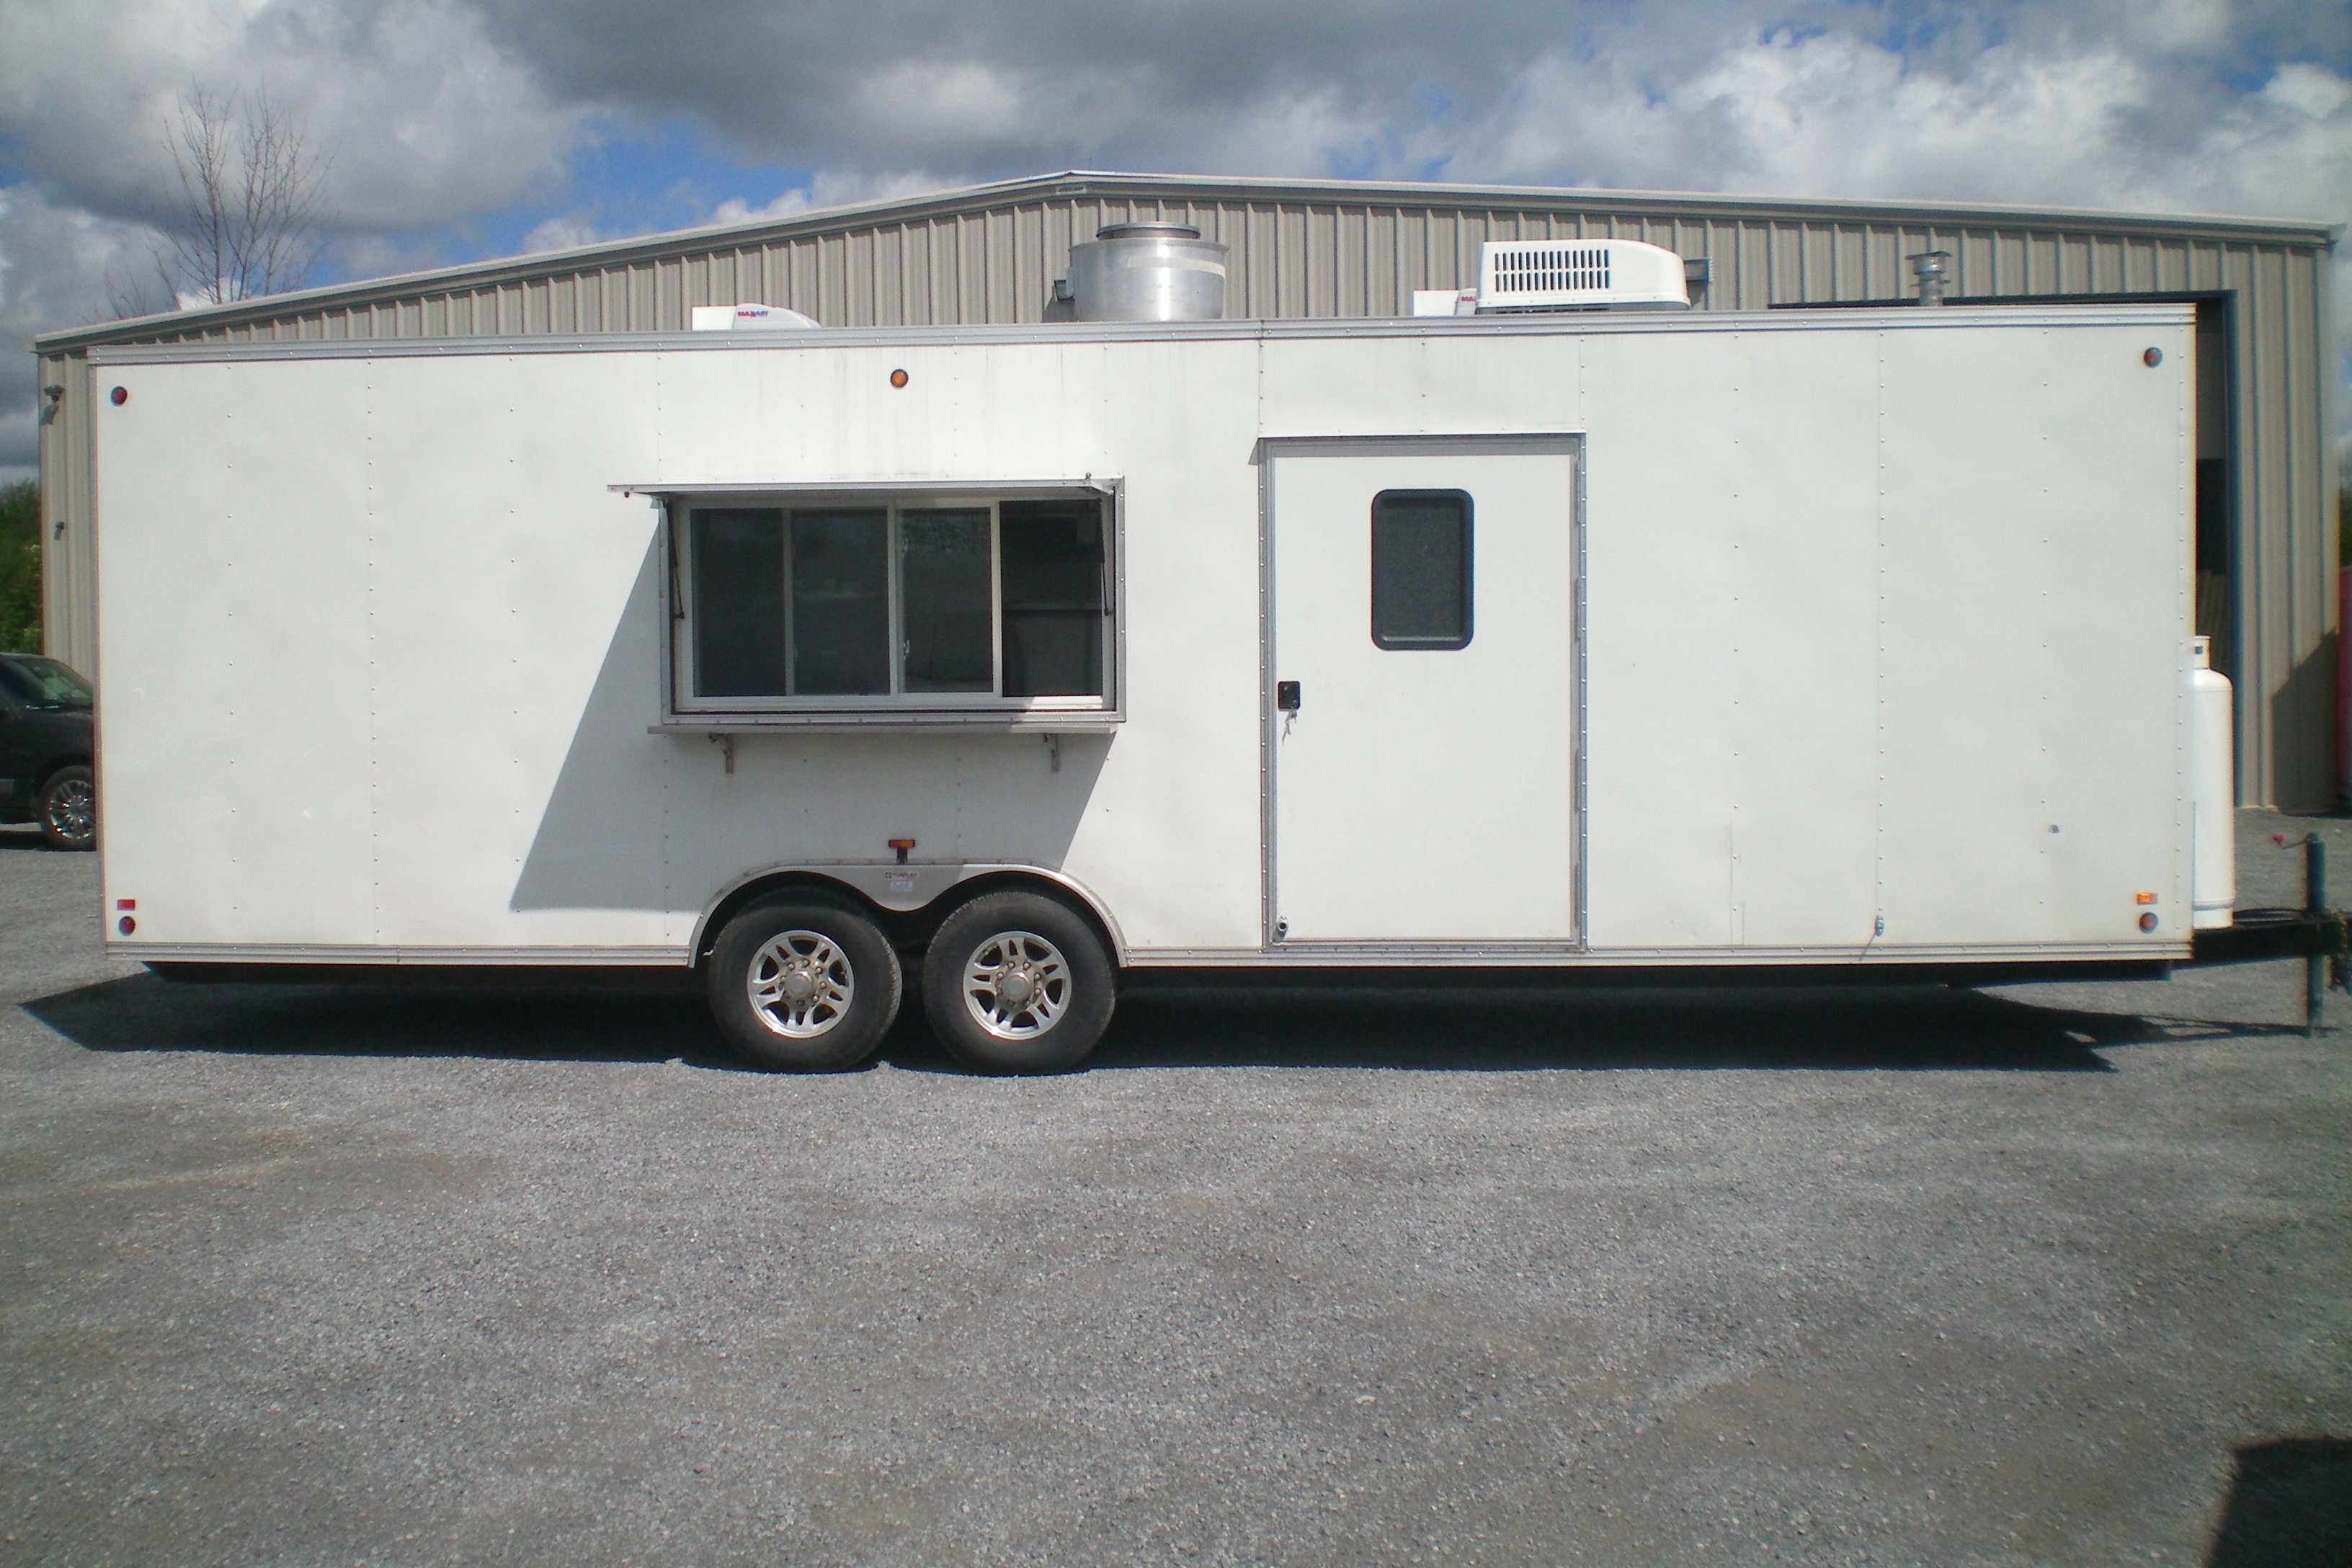 Mobile Kitchens Canada | Weekly, Monthly, Yearly Rentals